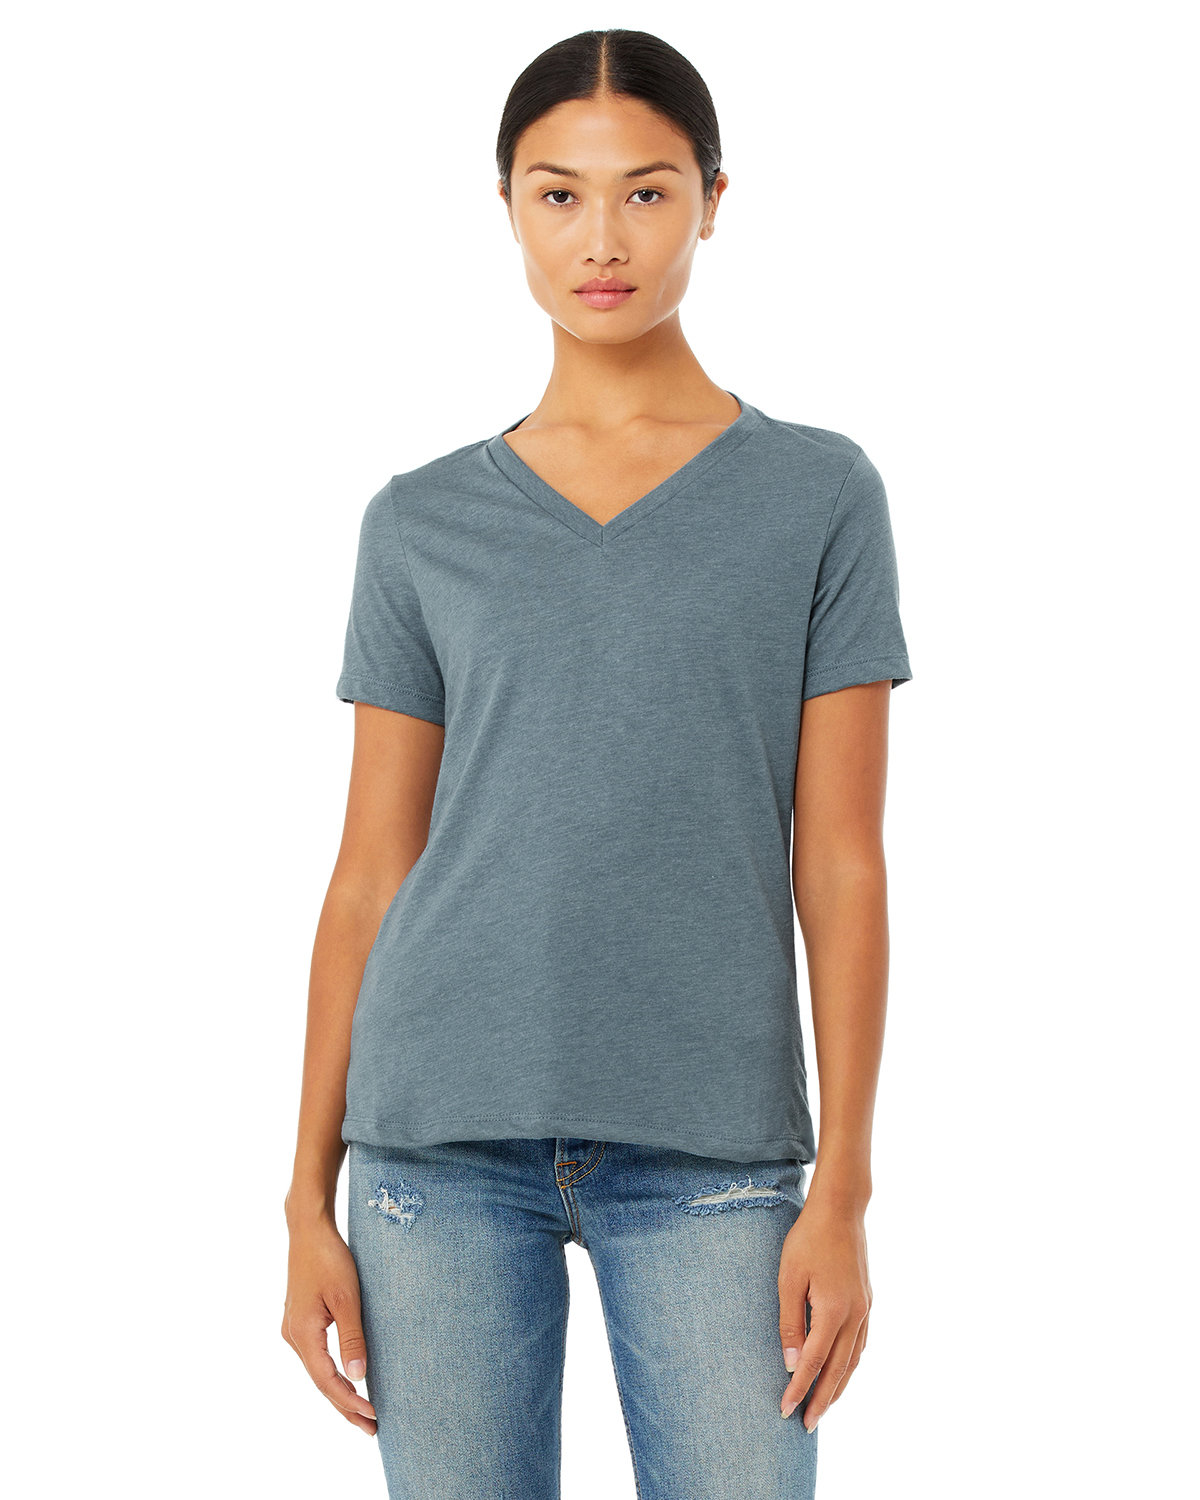 Bella + Canvas Ladies' Relaxed Jersey V-Neck T-Shirt HEATHER SLATE